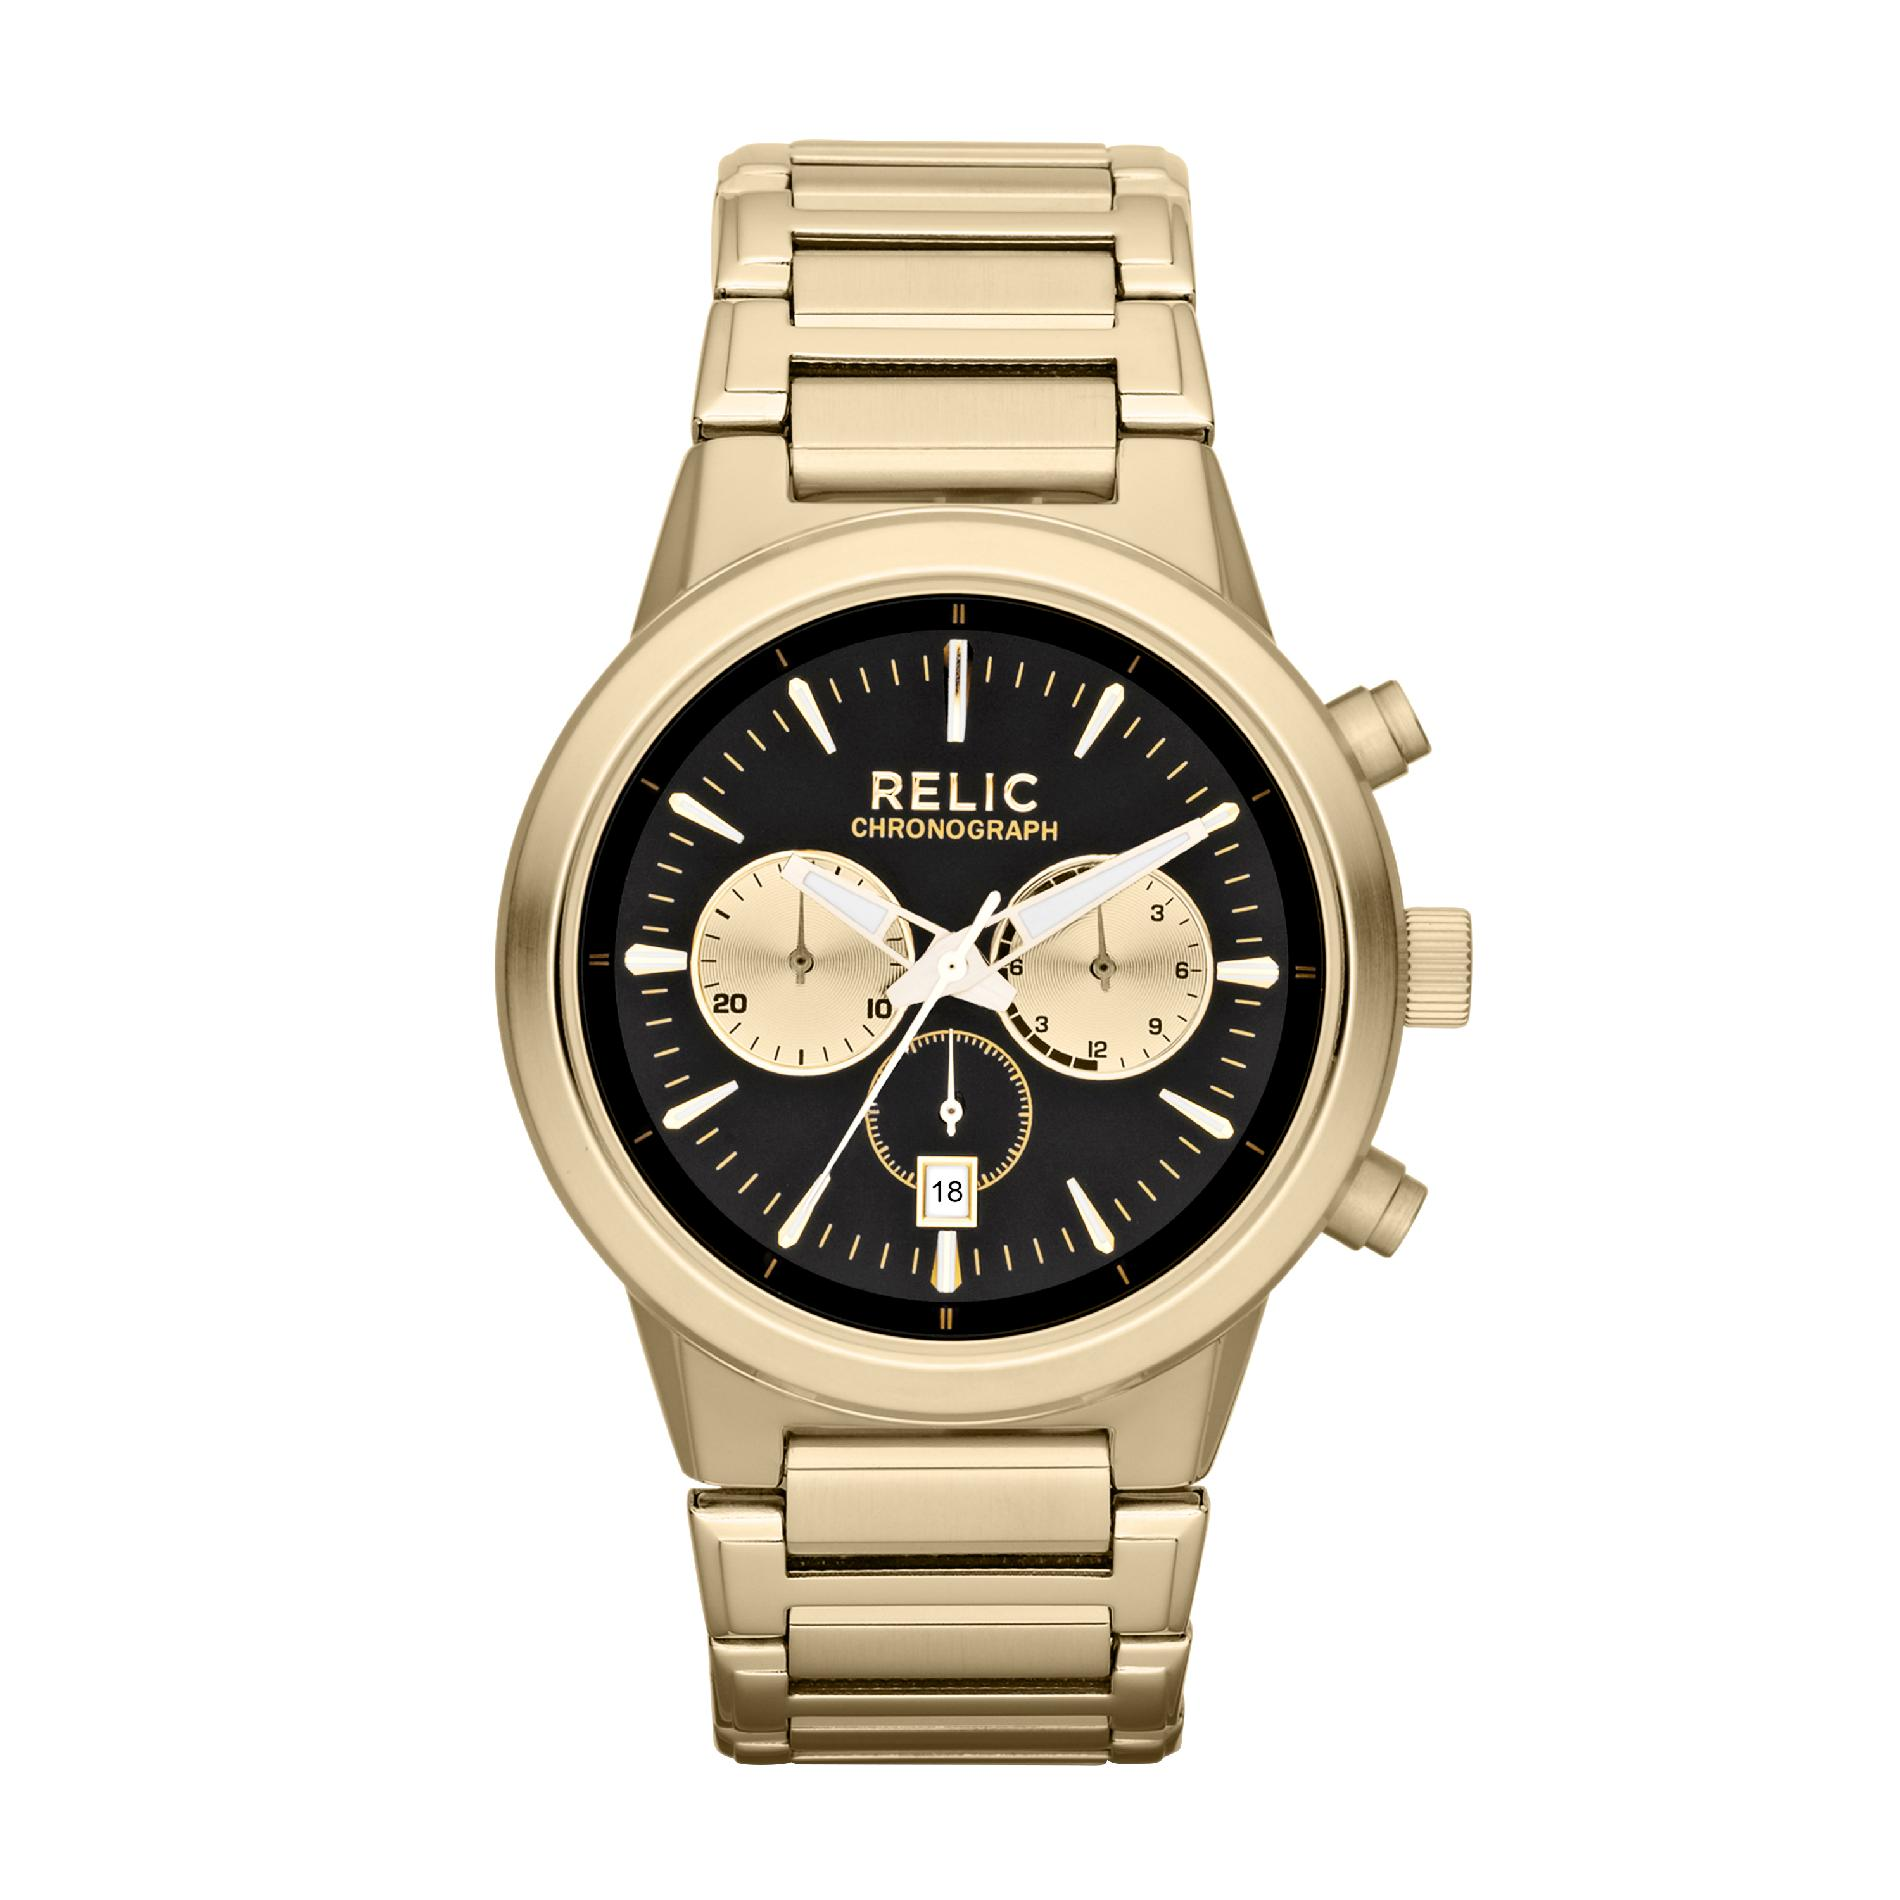 Relic Men's Wrigley Gold-Tone Chronograph Watch w/ Black & Gold Dials